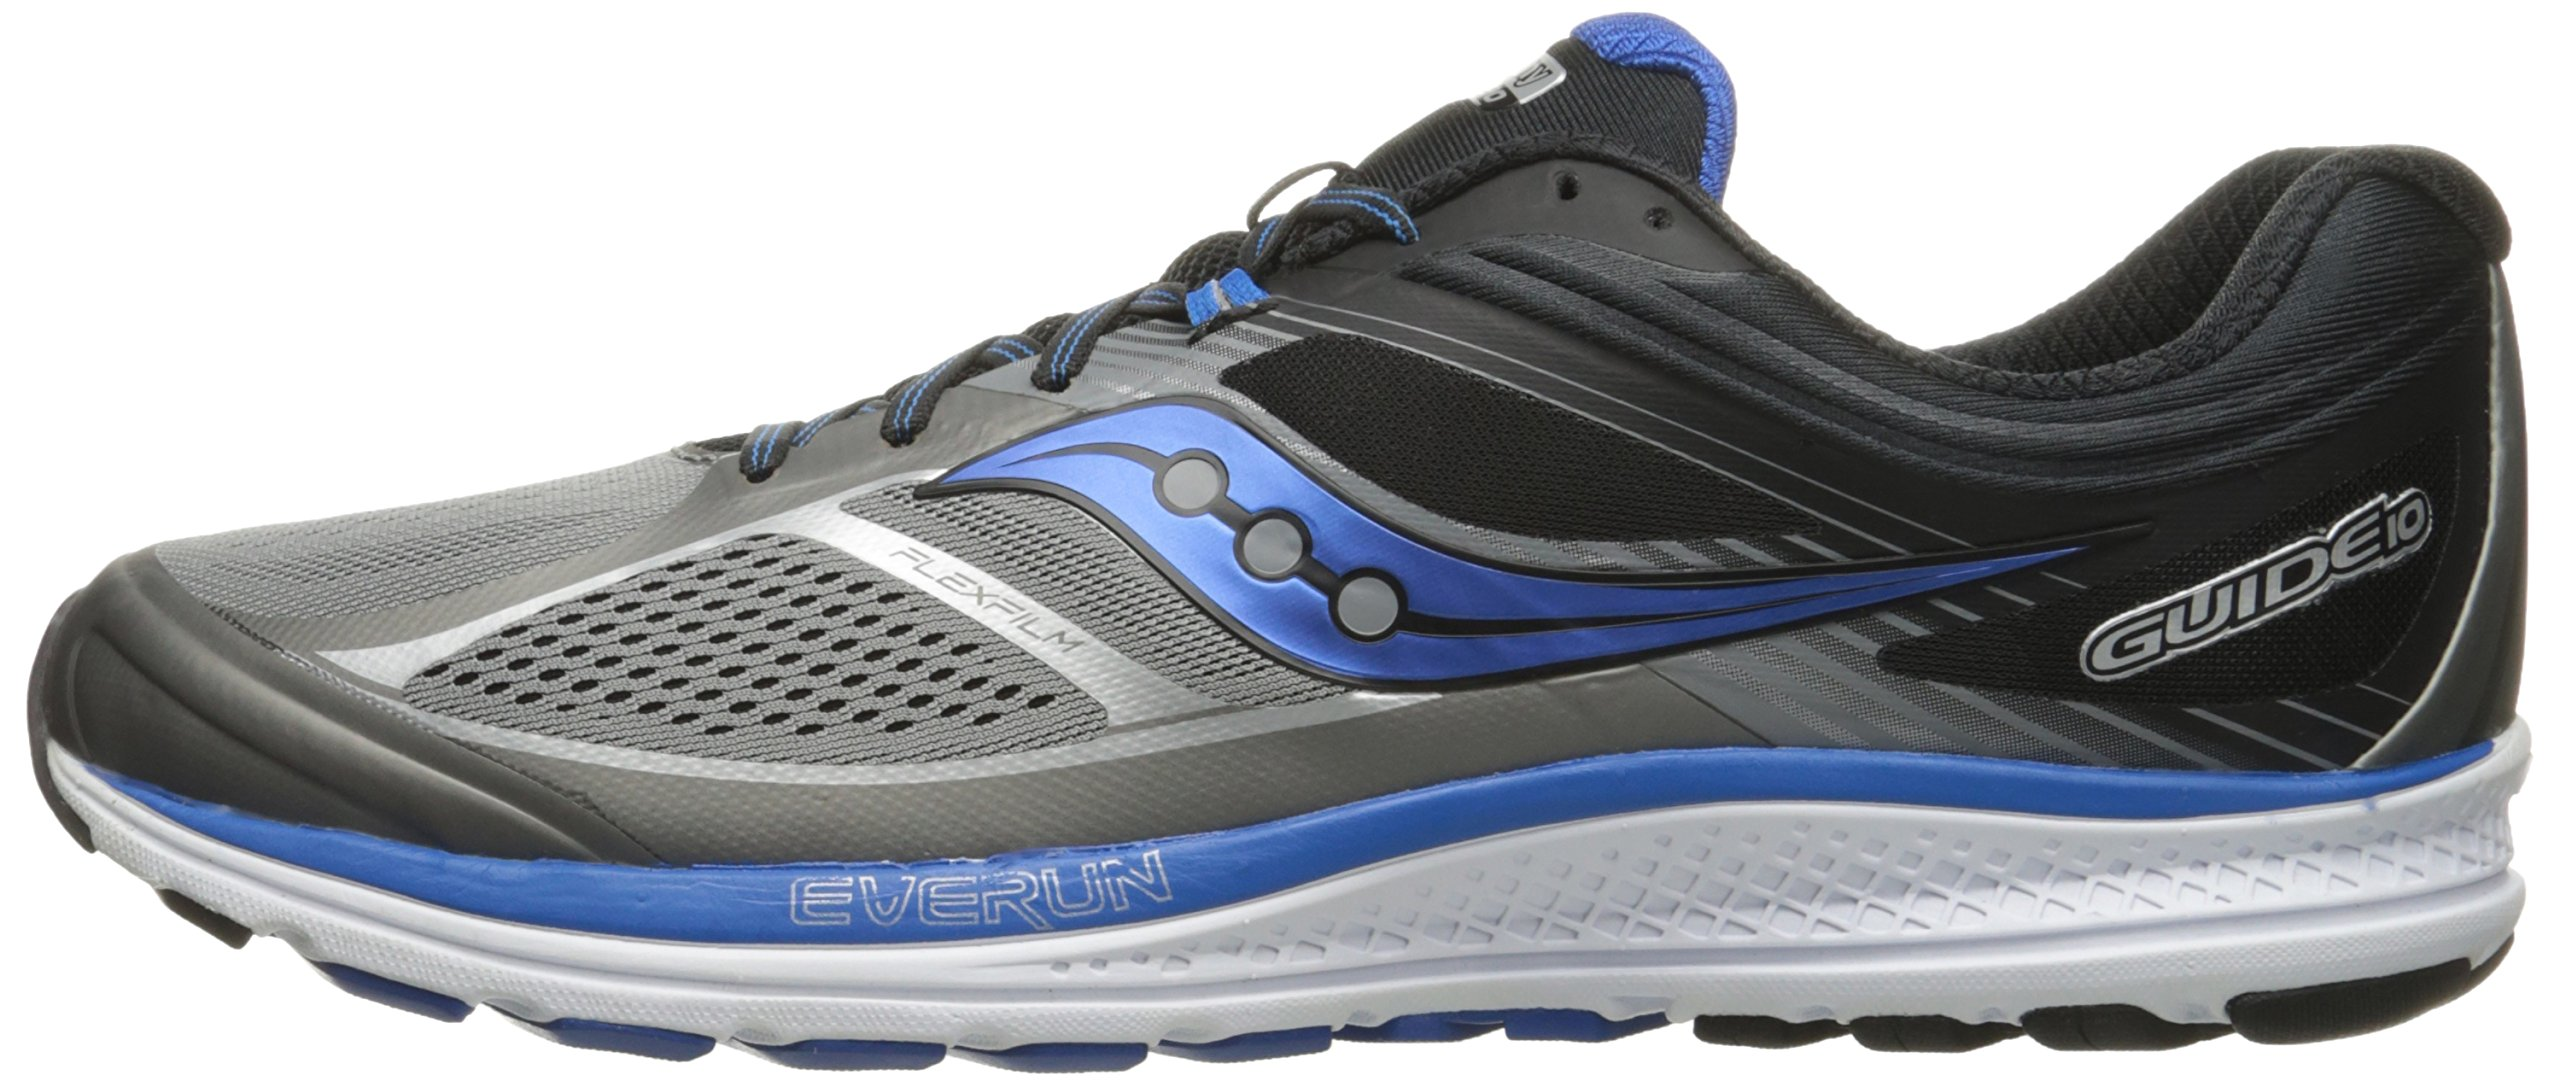 Saucony Men's Guide 10 Running Shoes, Grey Black, 14 D(M) US by Saucony (Image #5)